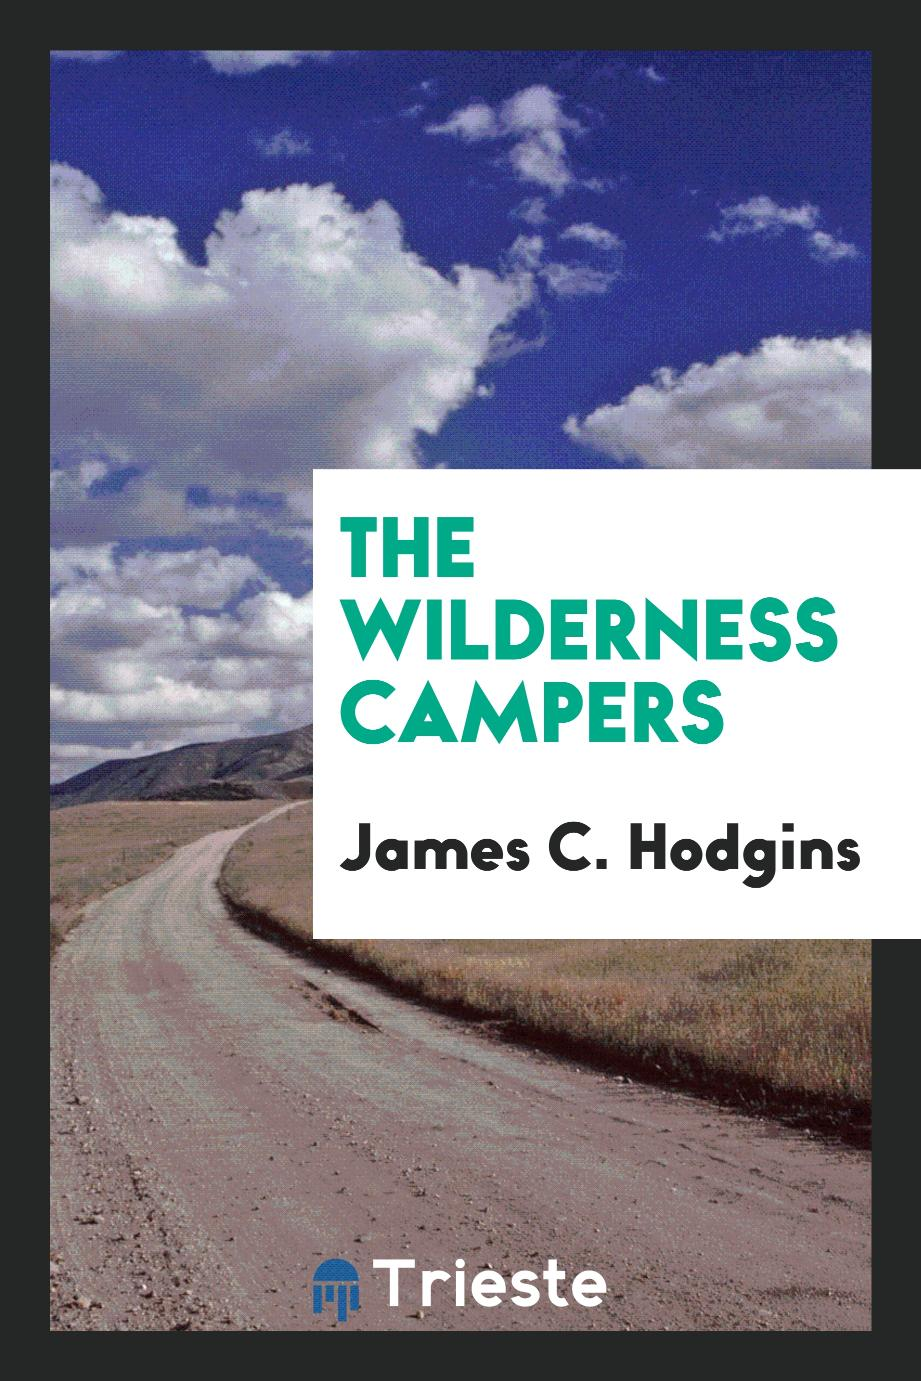 The wilderness campers